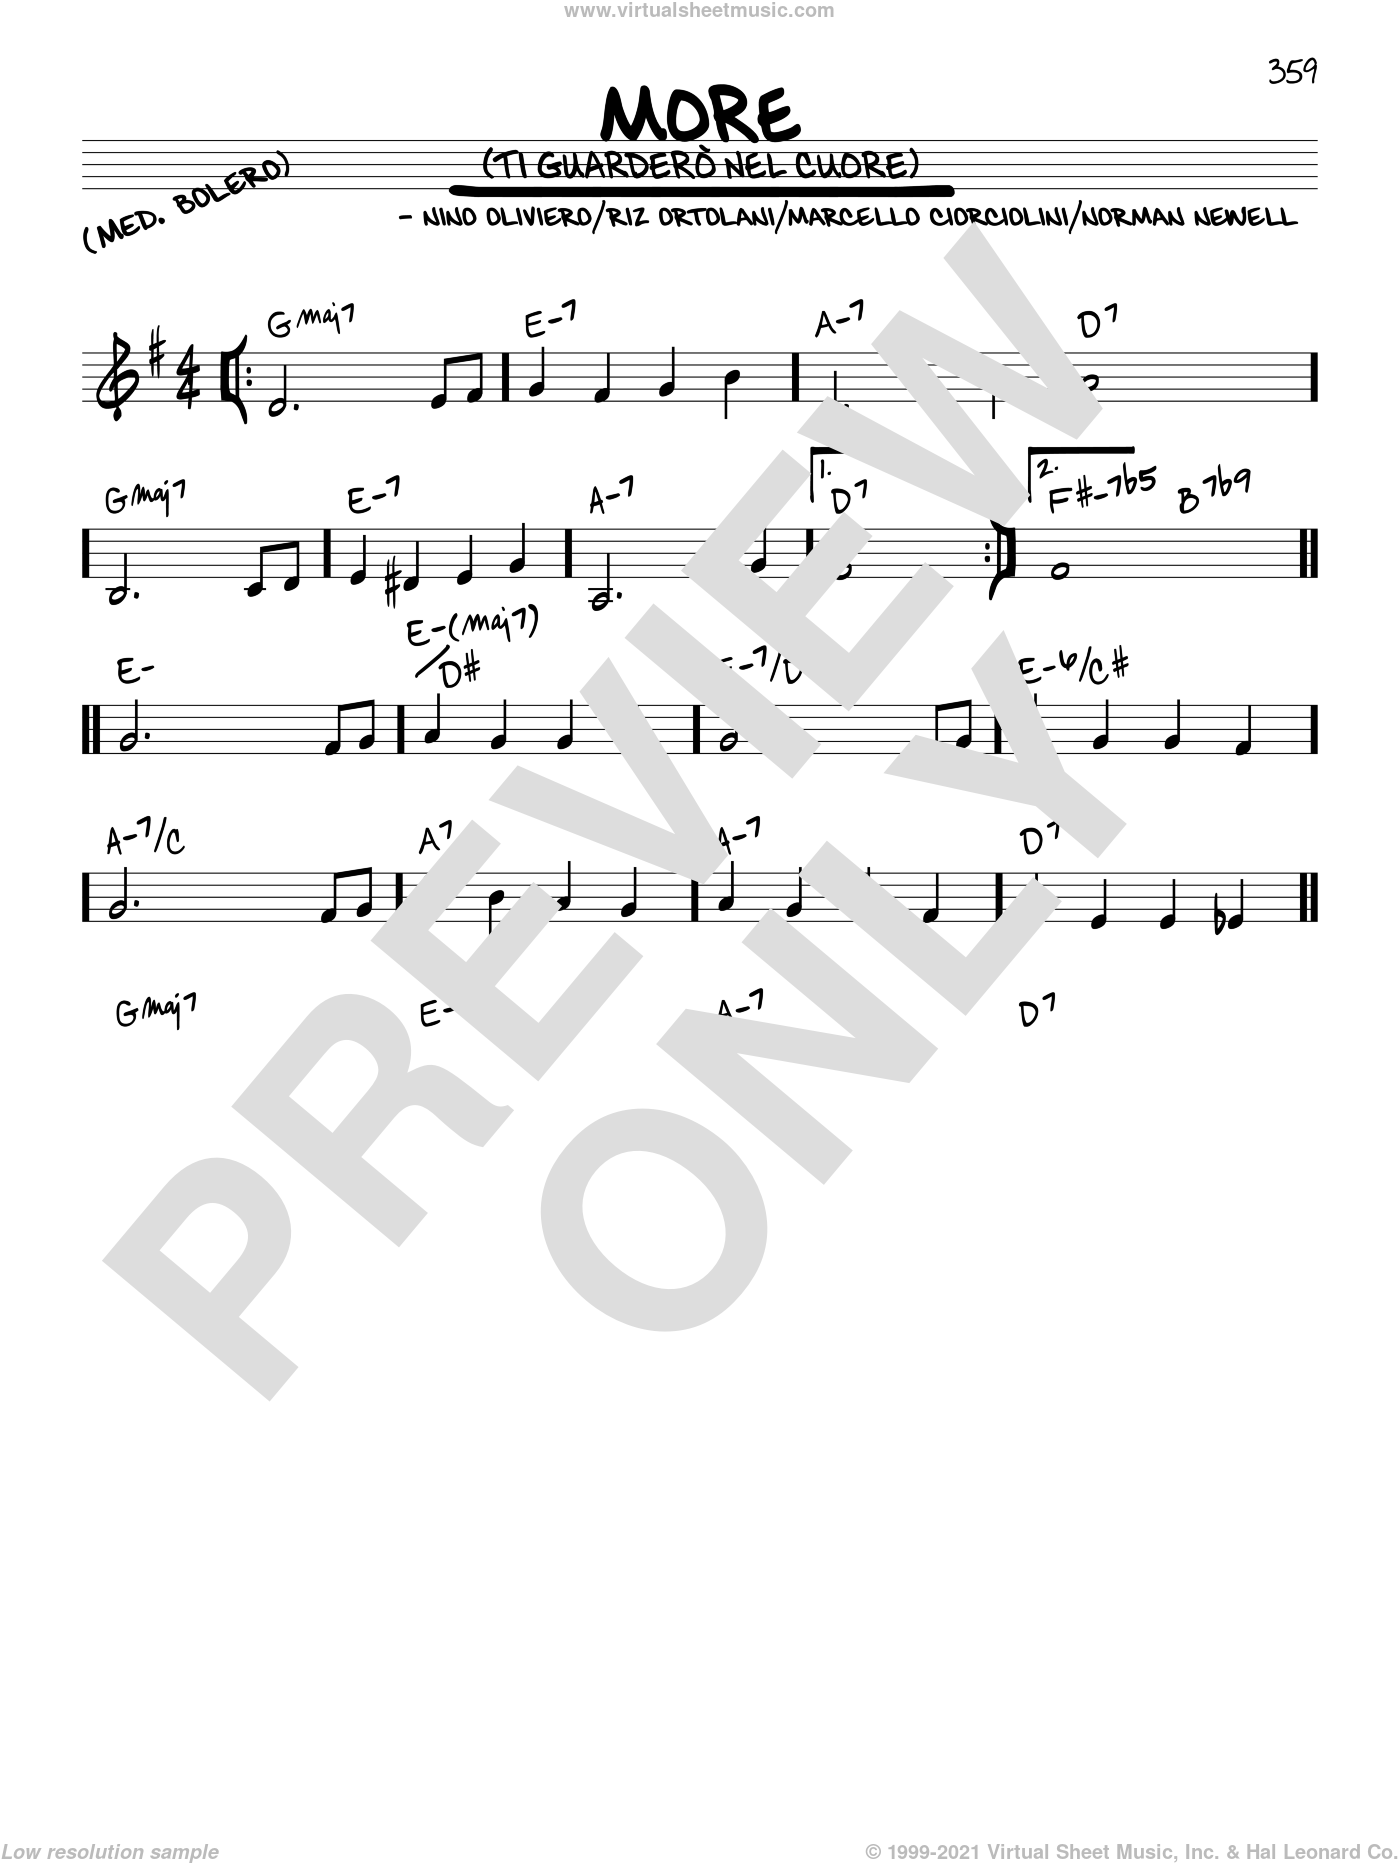 More (Ti Guardero Nel Cuore) sheet music for voice and other instruments (in C) by Marcello Ciorciolini, Nino Oliviero, Norman Newell and Riz Ortolani, intermediate skill level